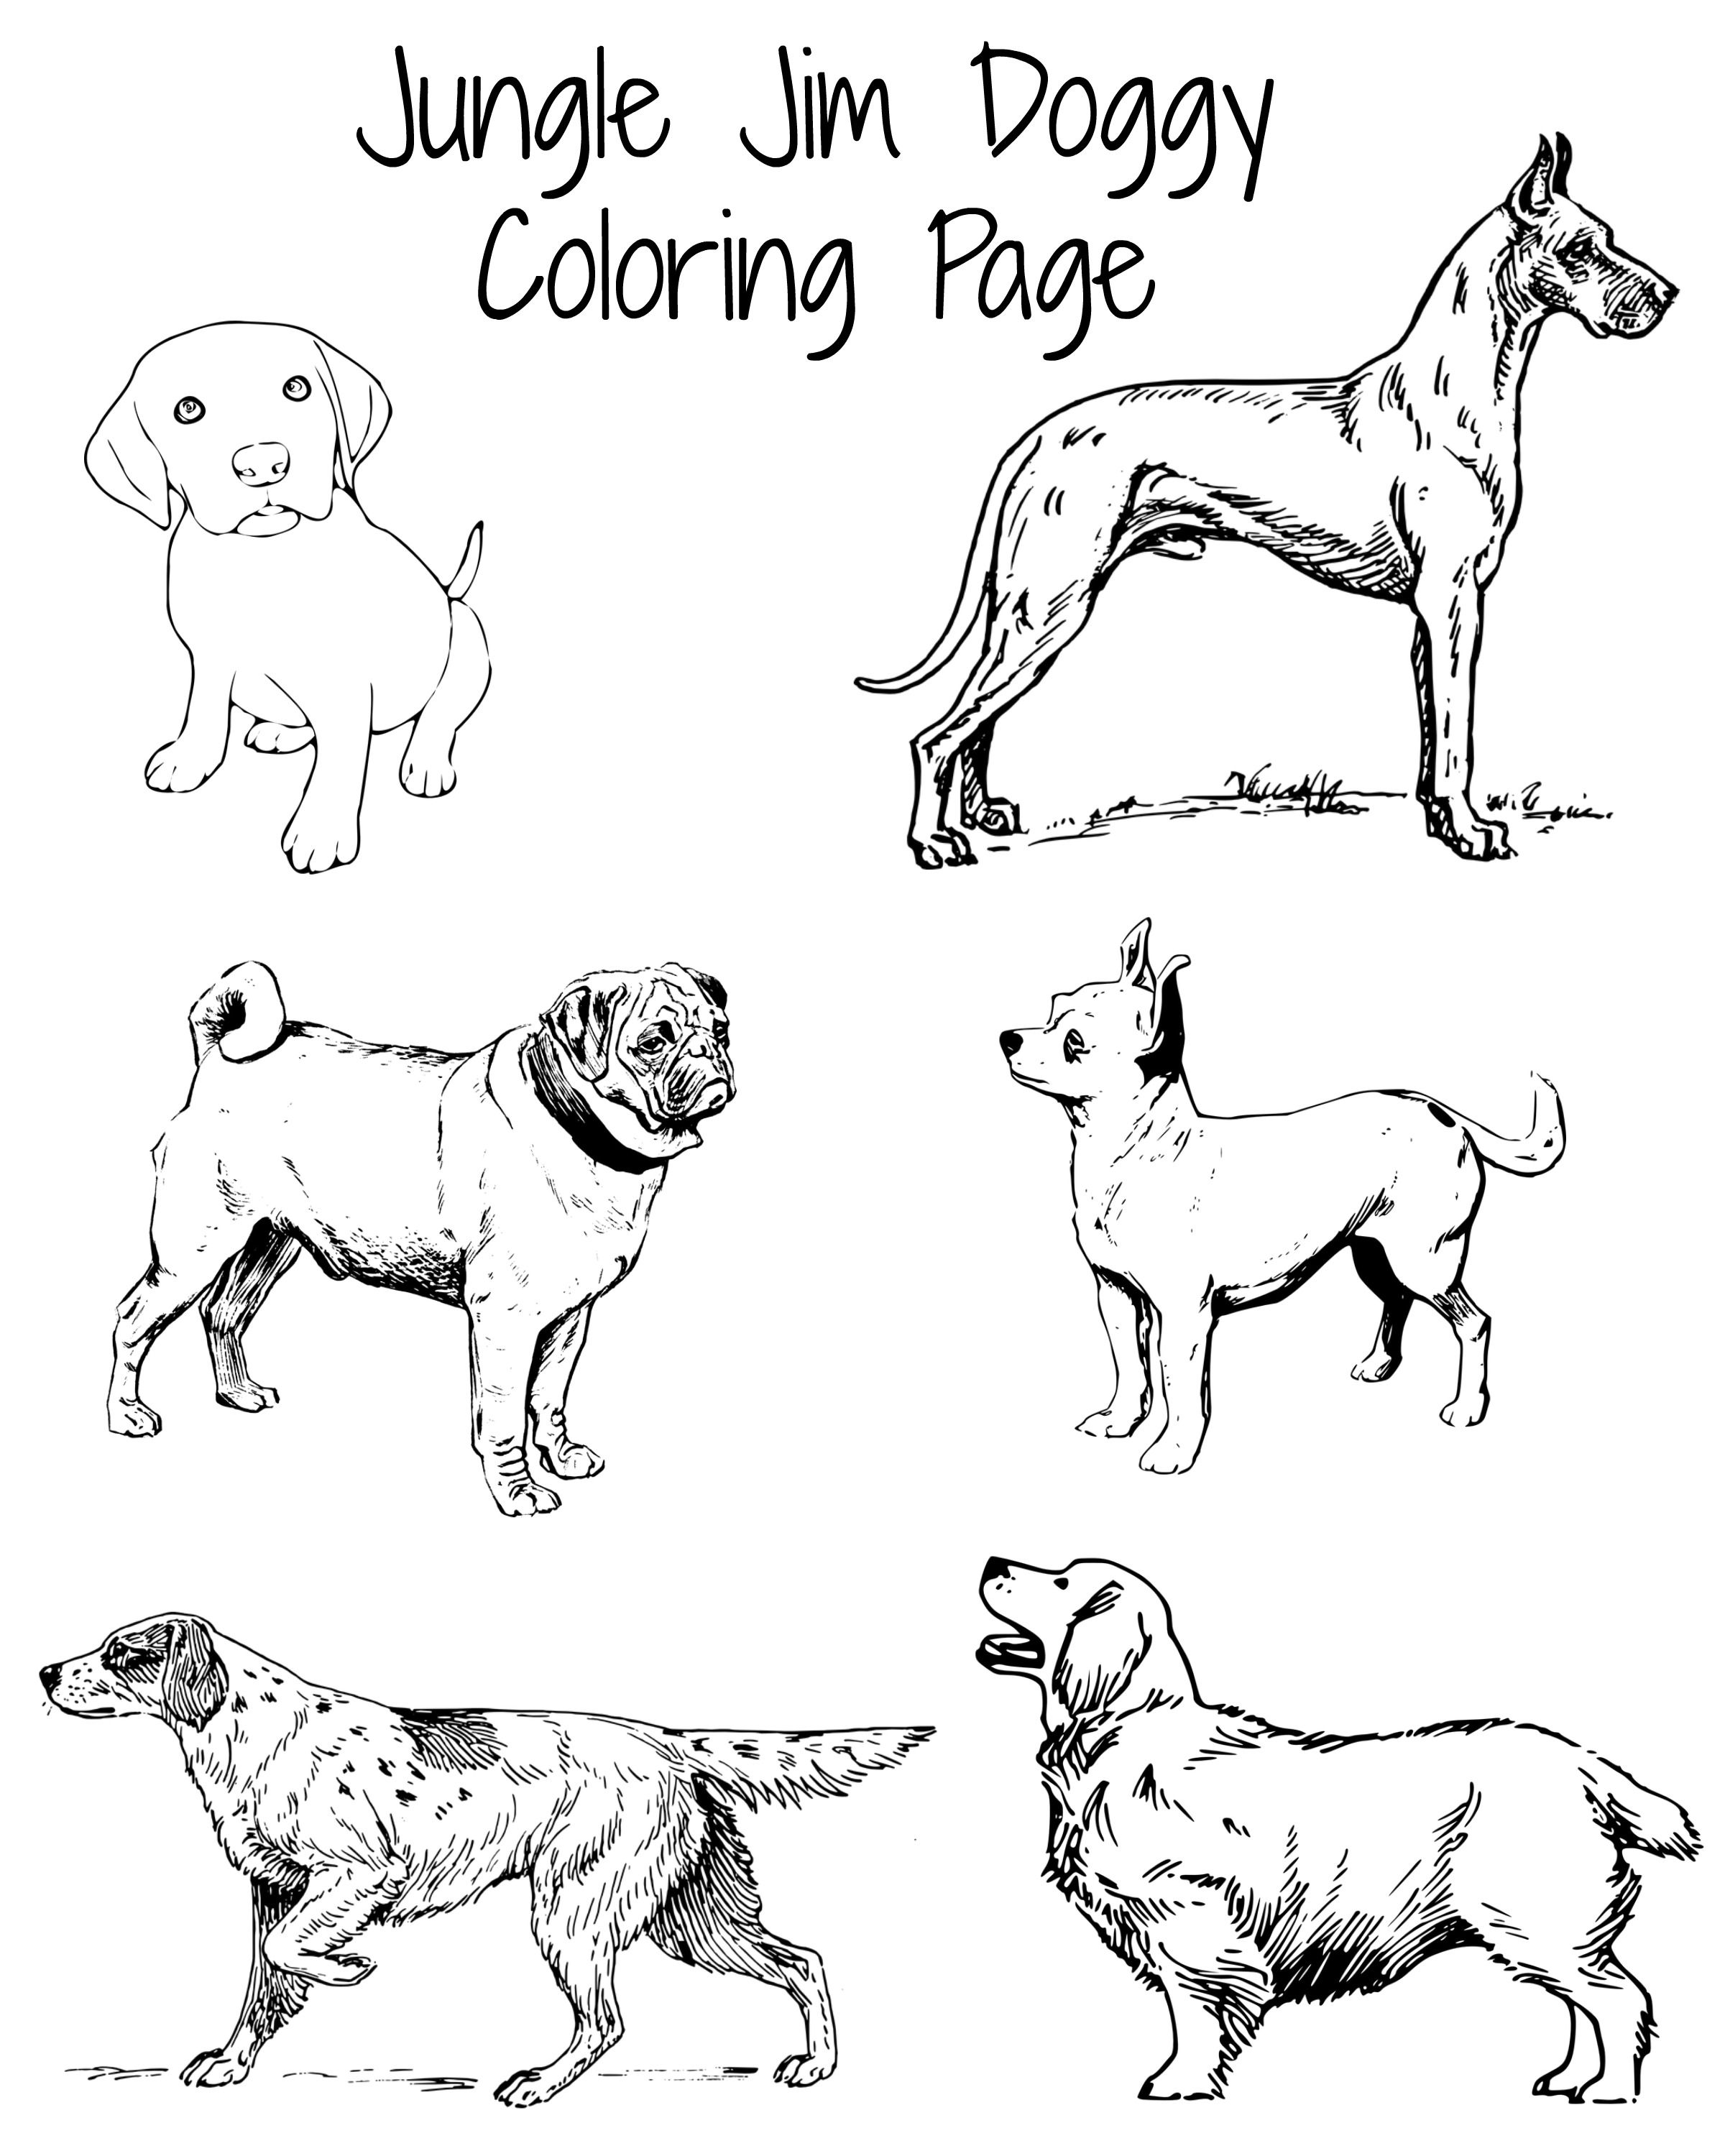 Doggy Coloring Page, perfect for the Dog Days of Summer